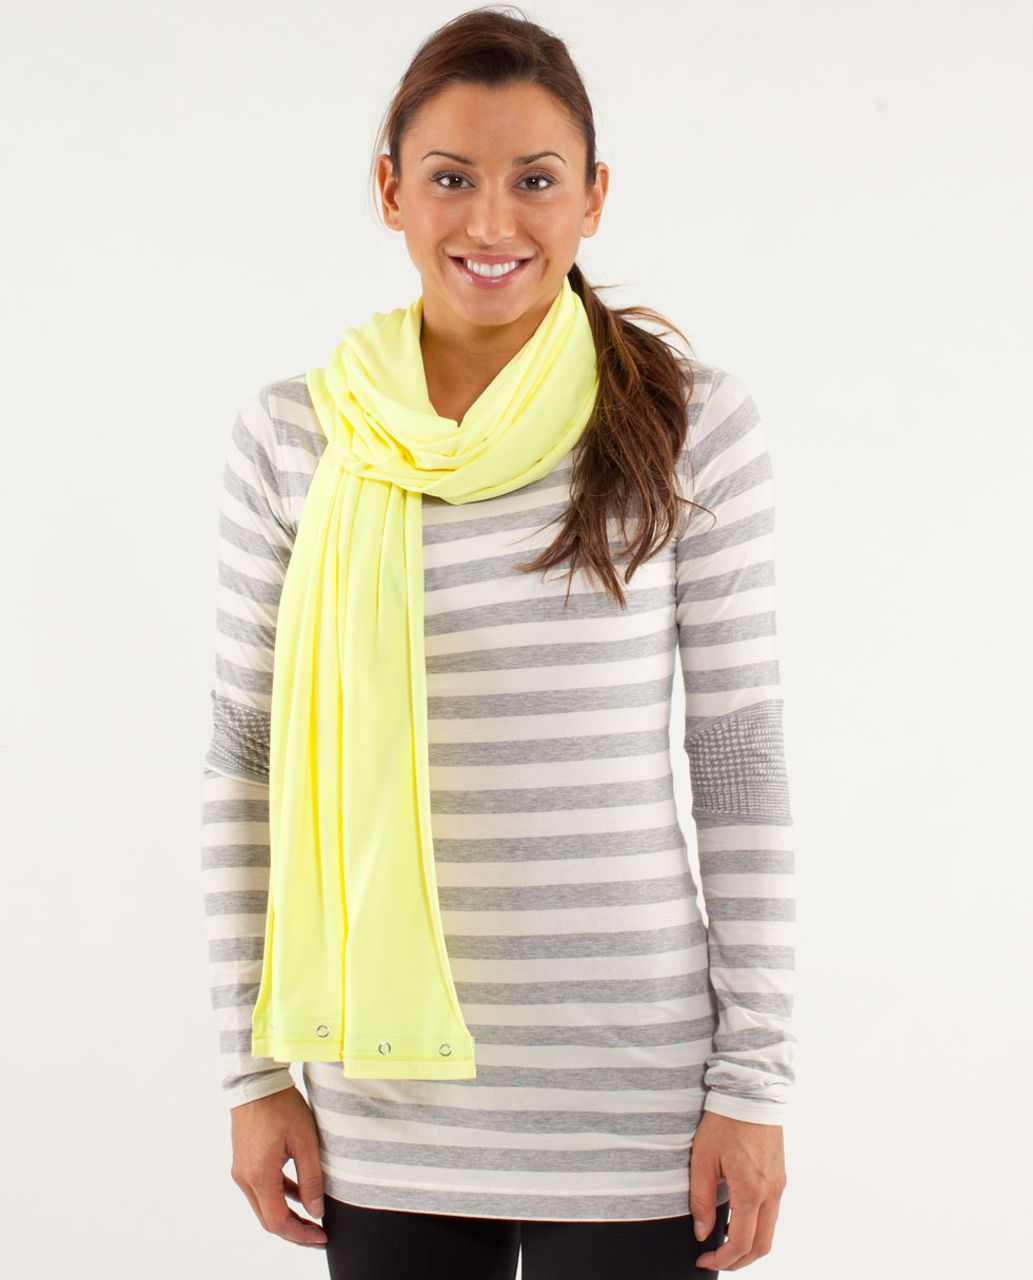 Lululemon Vinyasa Scarf - Clarity Yellow